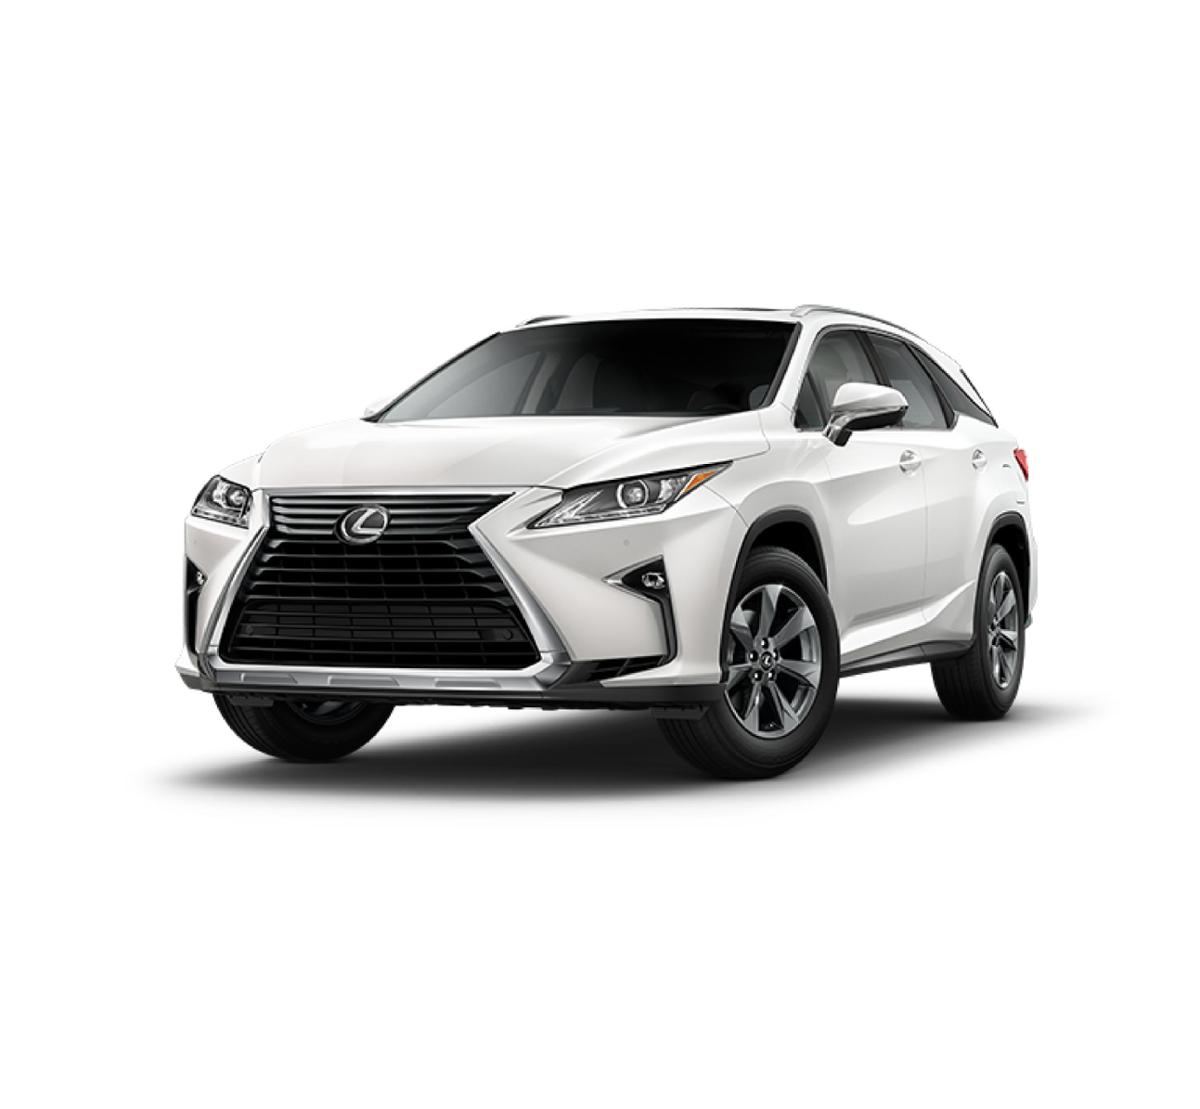 2019 Lexus RX 350L Vehicle Photo in El Monte, CA 91731